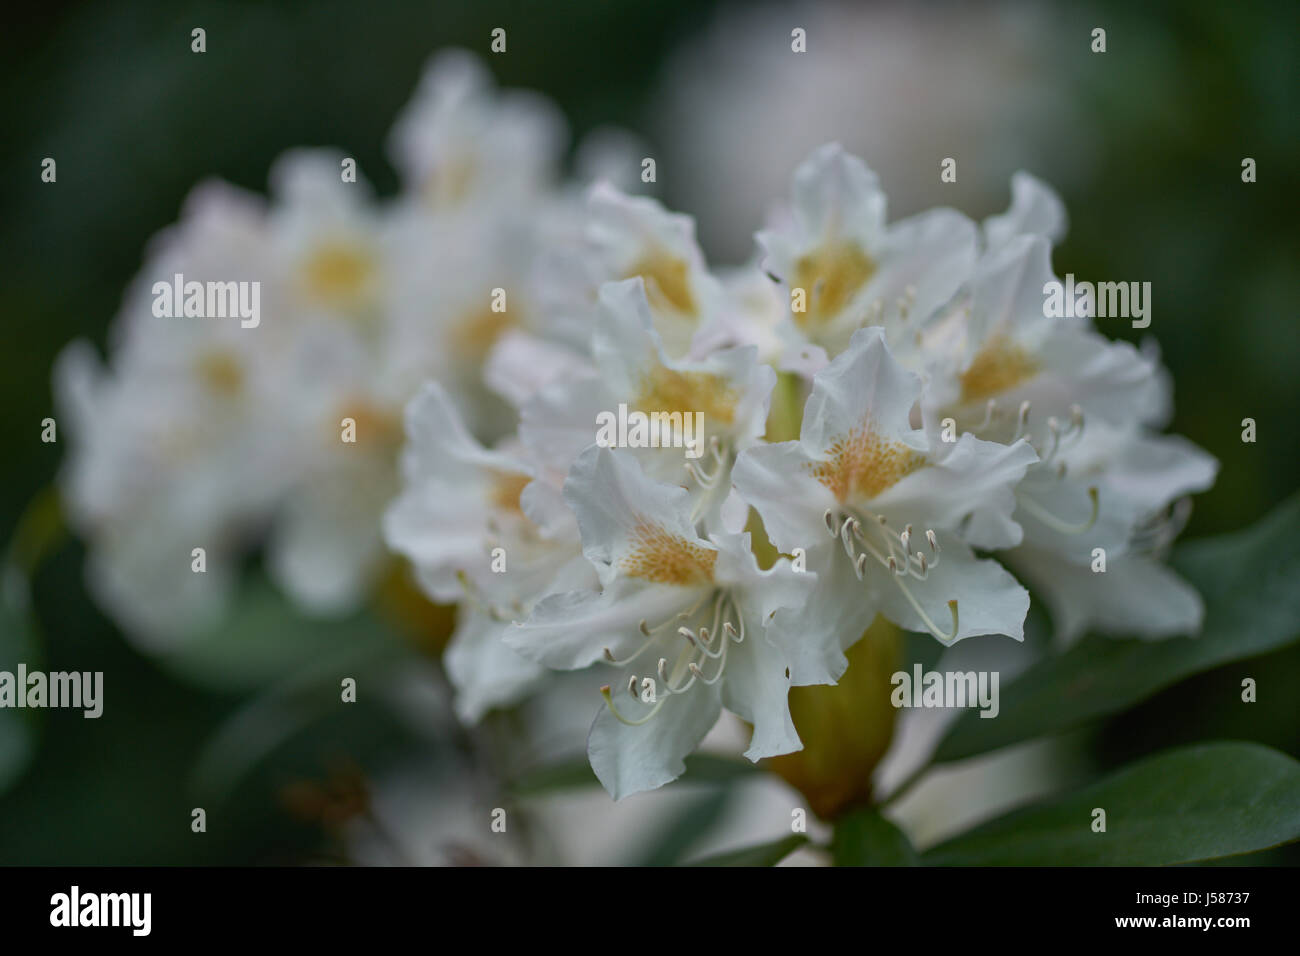 White flowers with yellow centers stock photos white flowers with rhodednron cunninghams white flowers with yellow centers close up stock image mightylinksfo